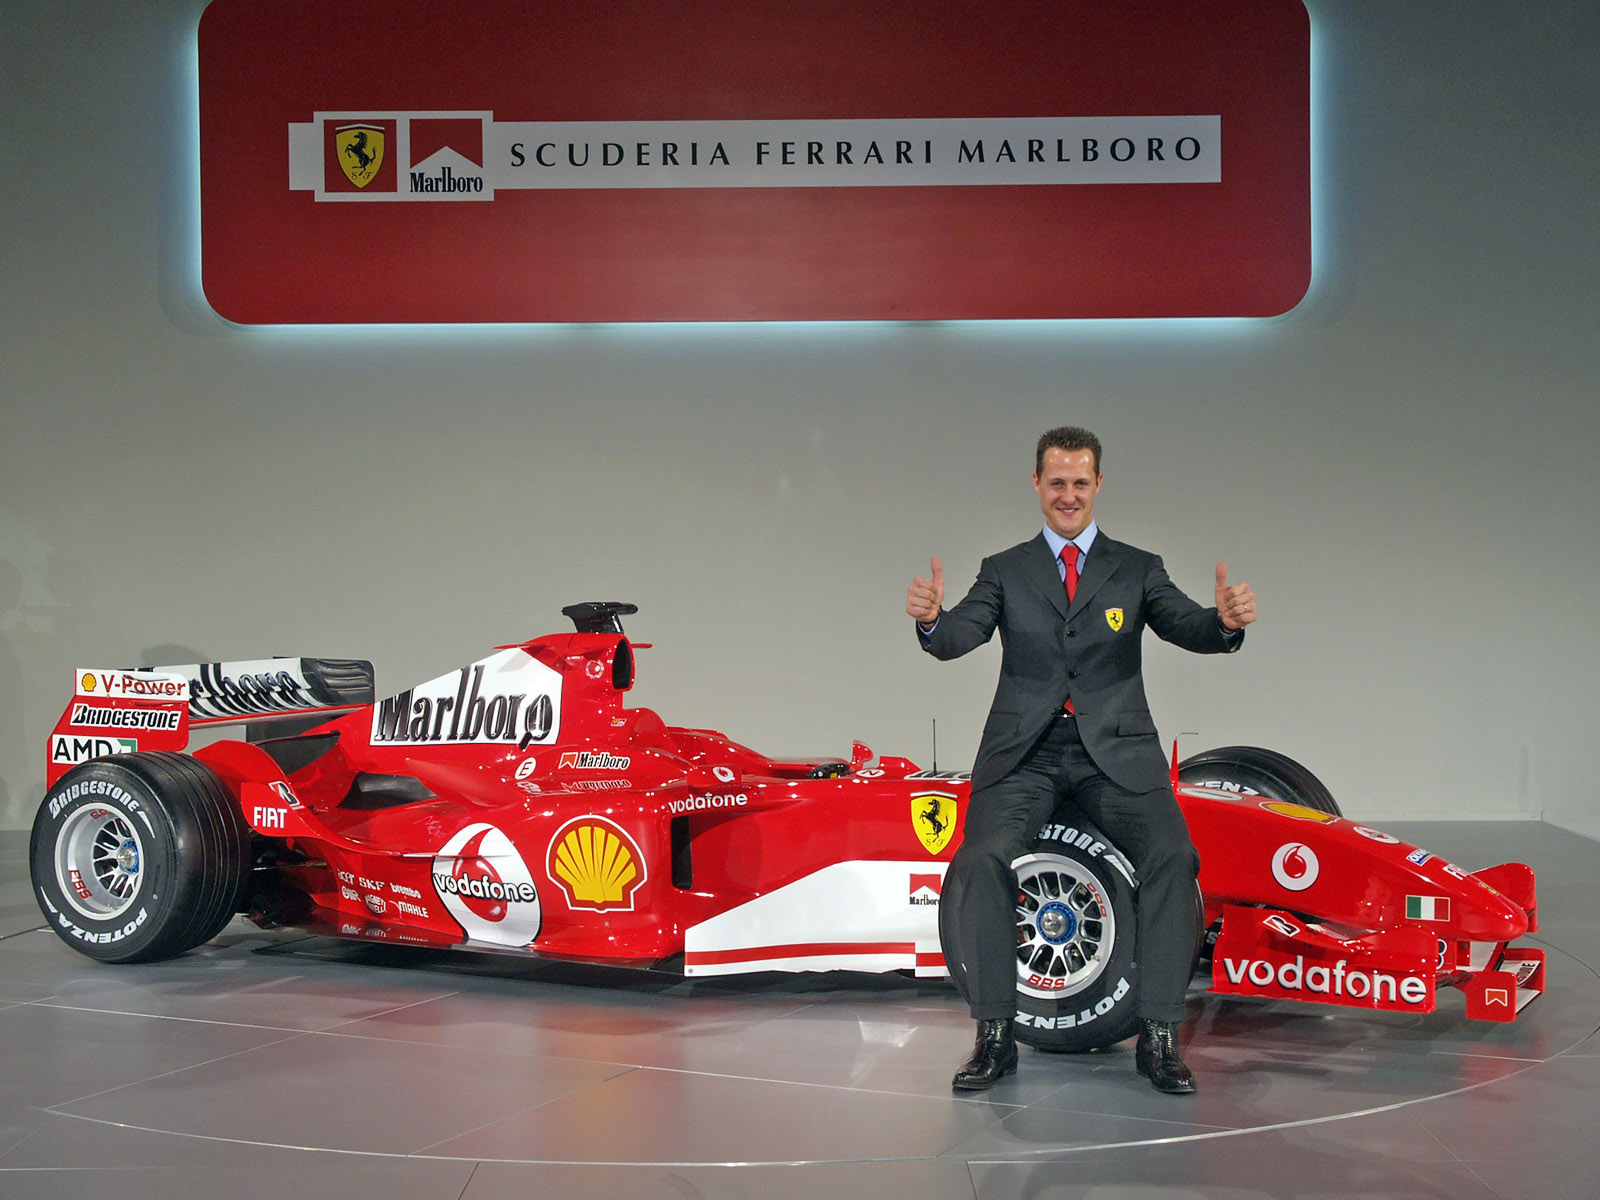 MichaelSchumacher